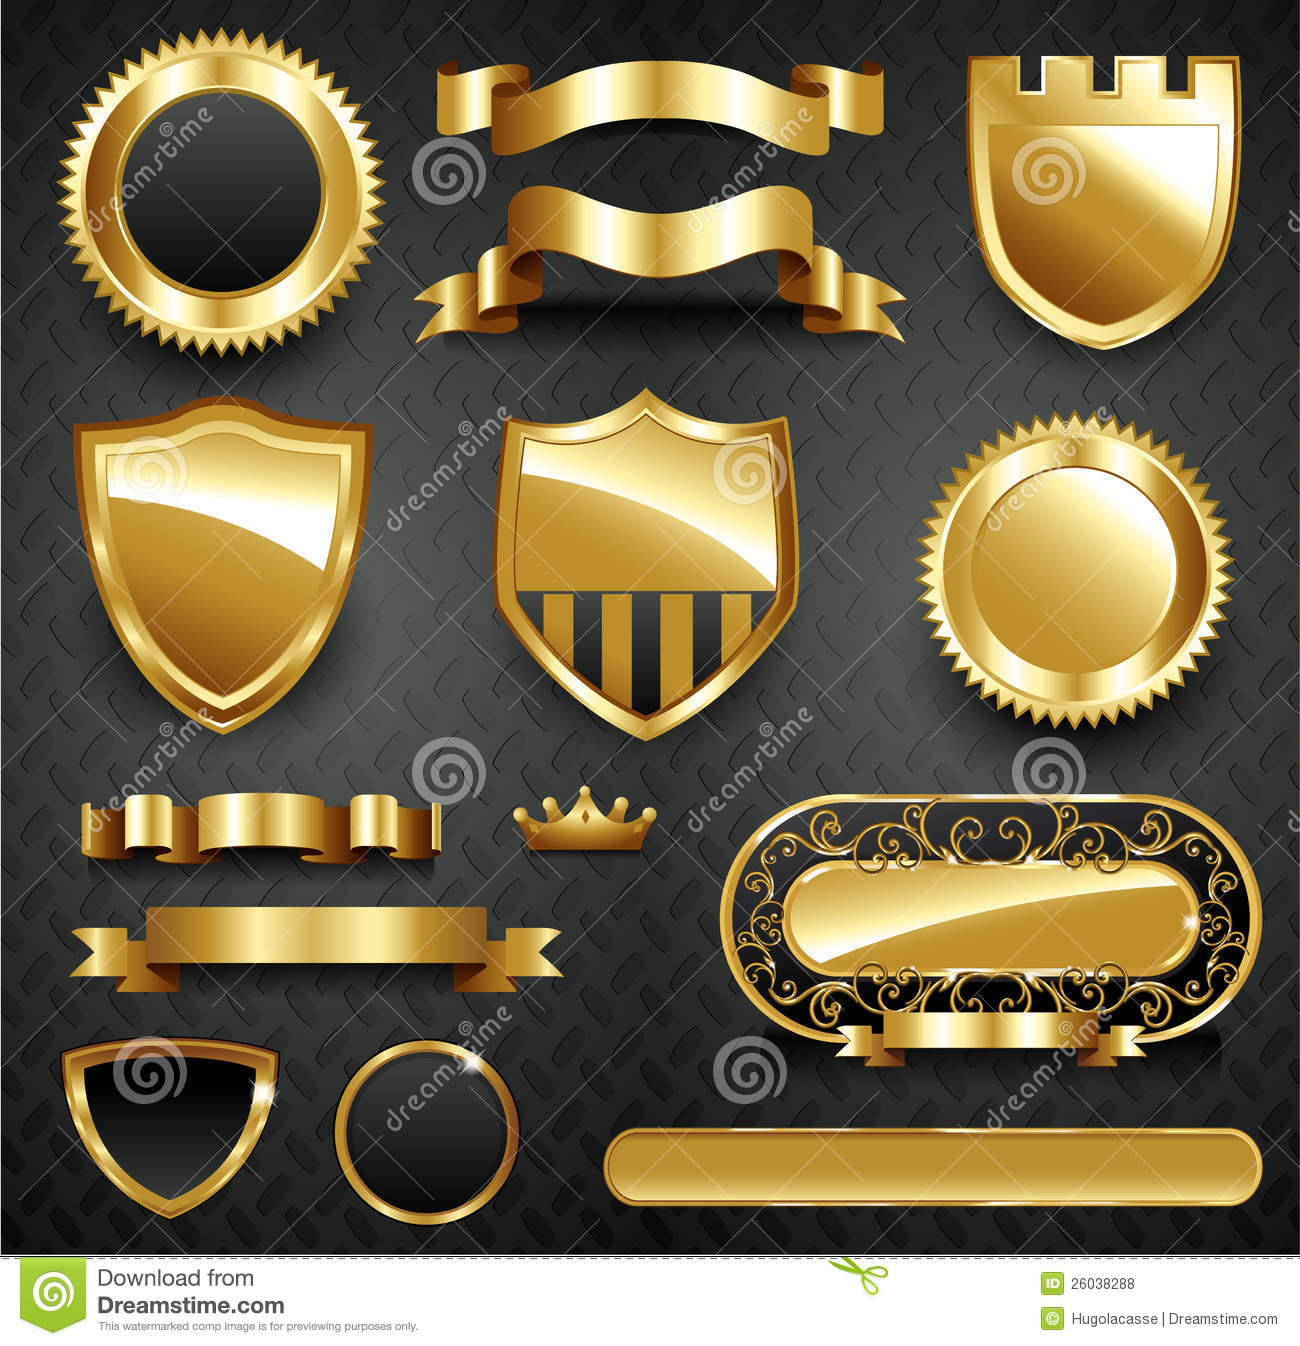 ... Gold Frame Collection Royalty Free Stock Photos - Image: 26038288: www.dreamstime.com/royalty-free-stock-photos-decorative-ornate-gold...